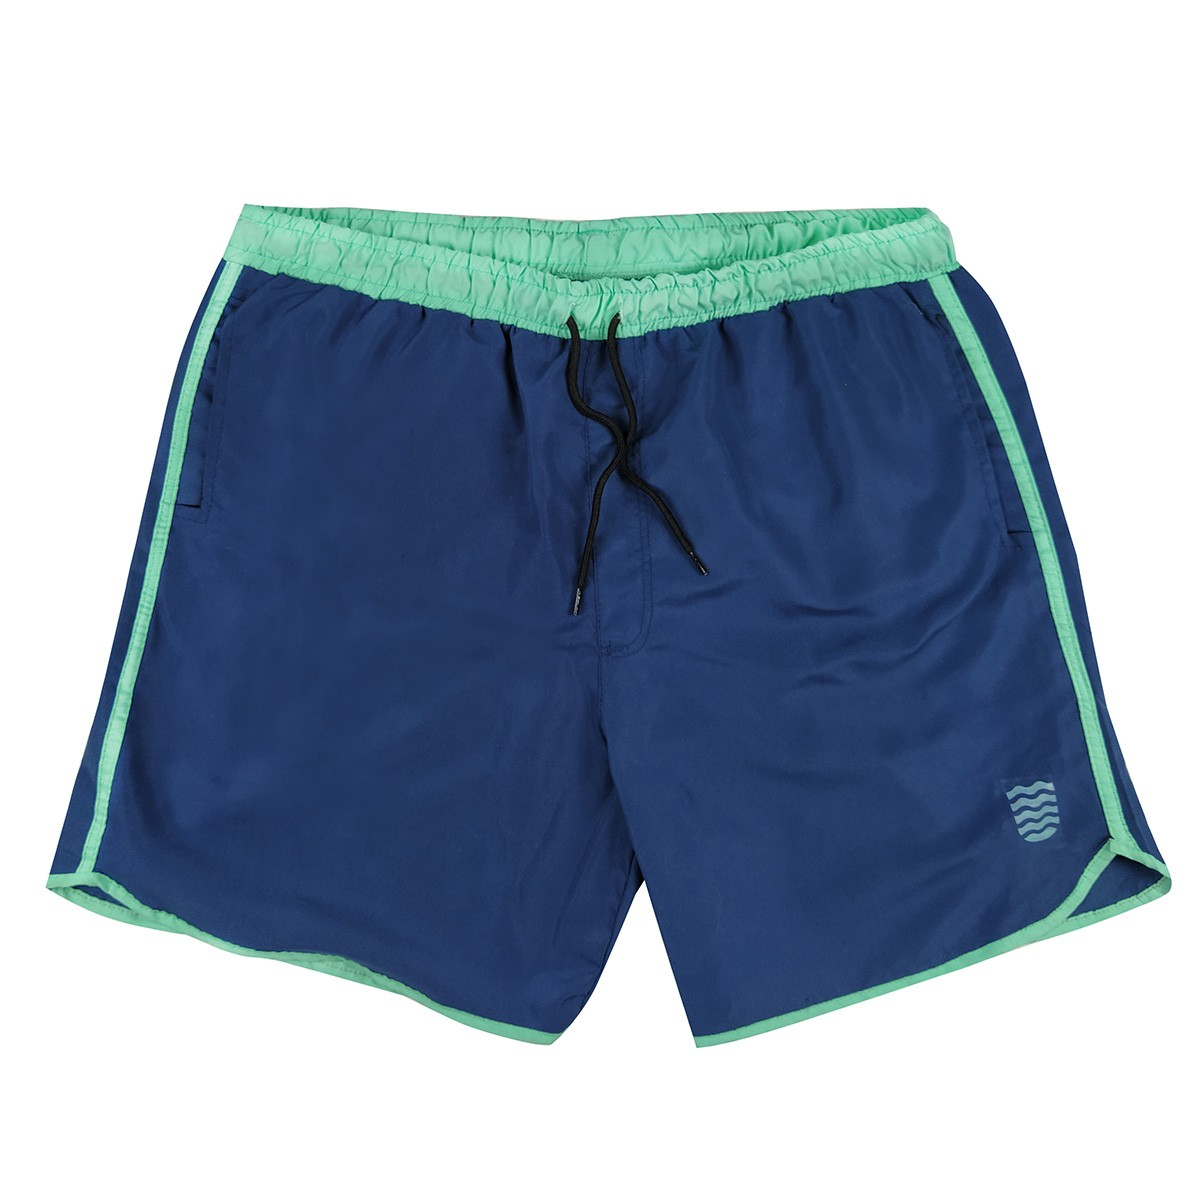 Shorts Masculino Wss Colors Indigo